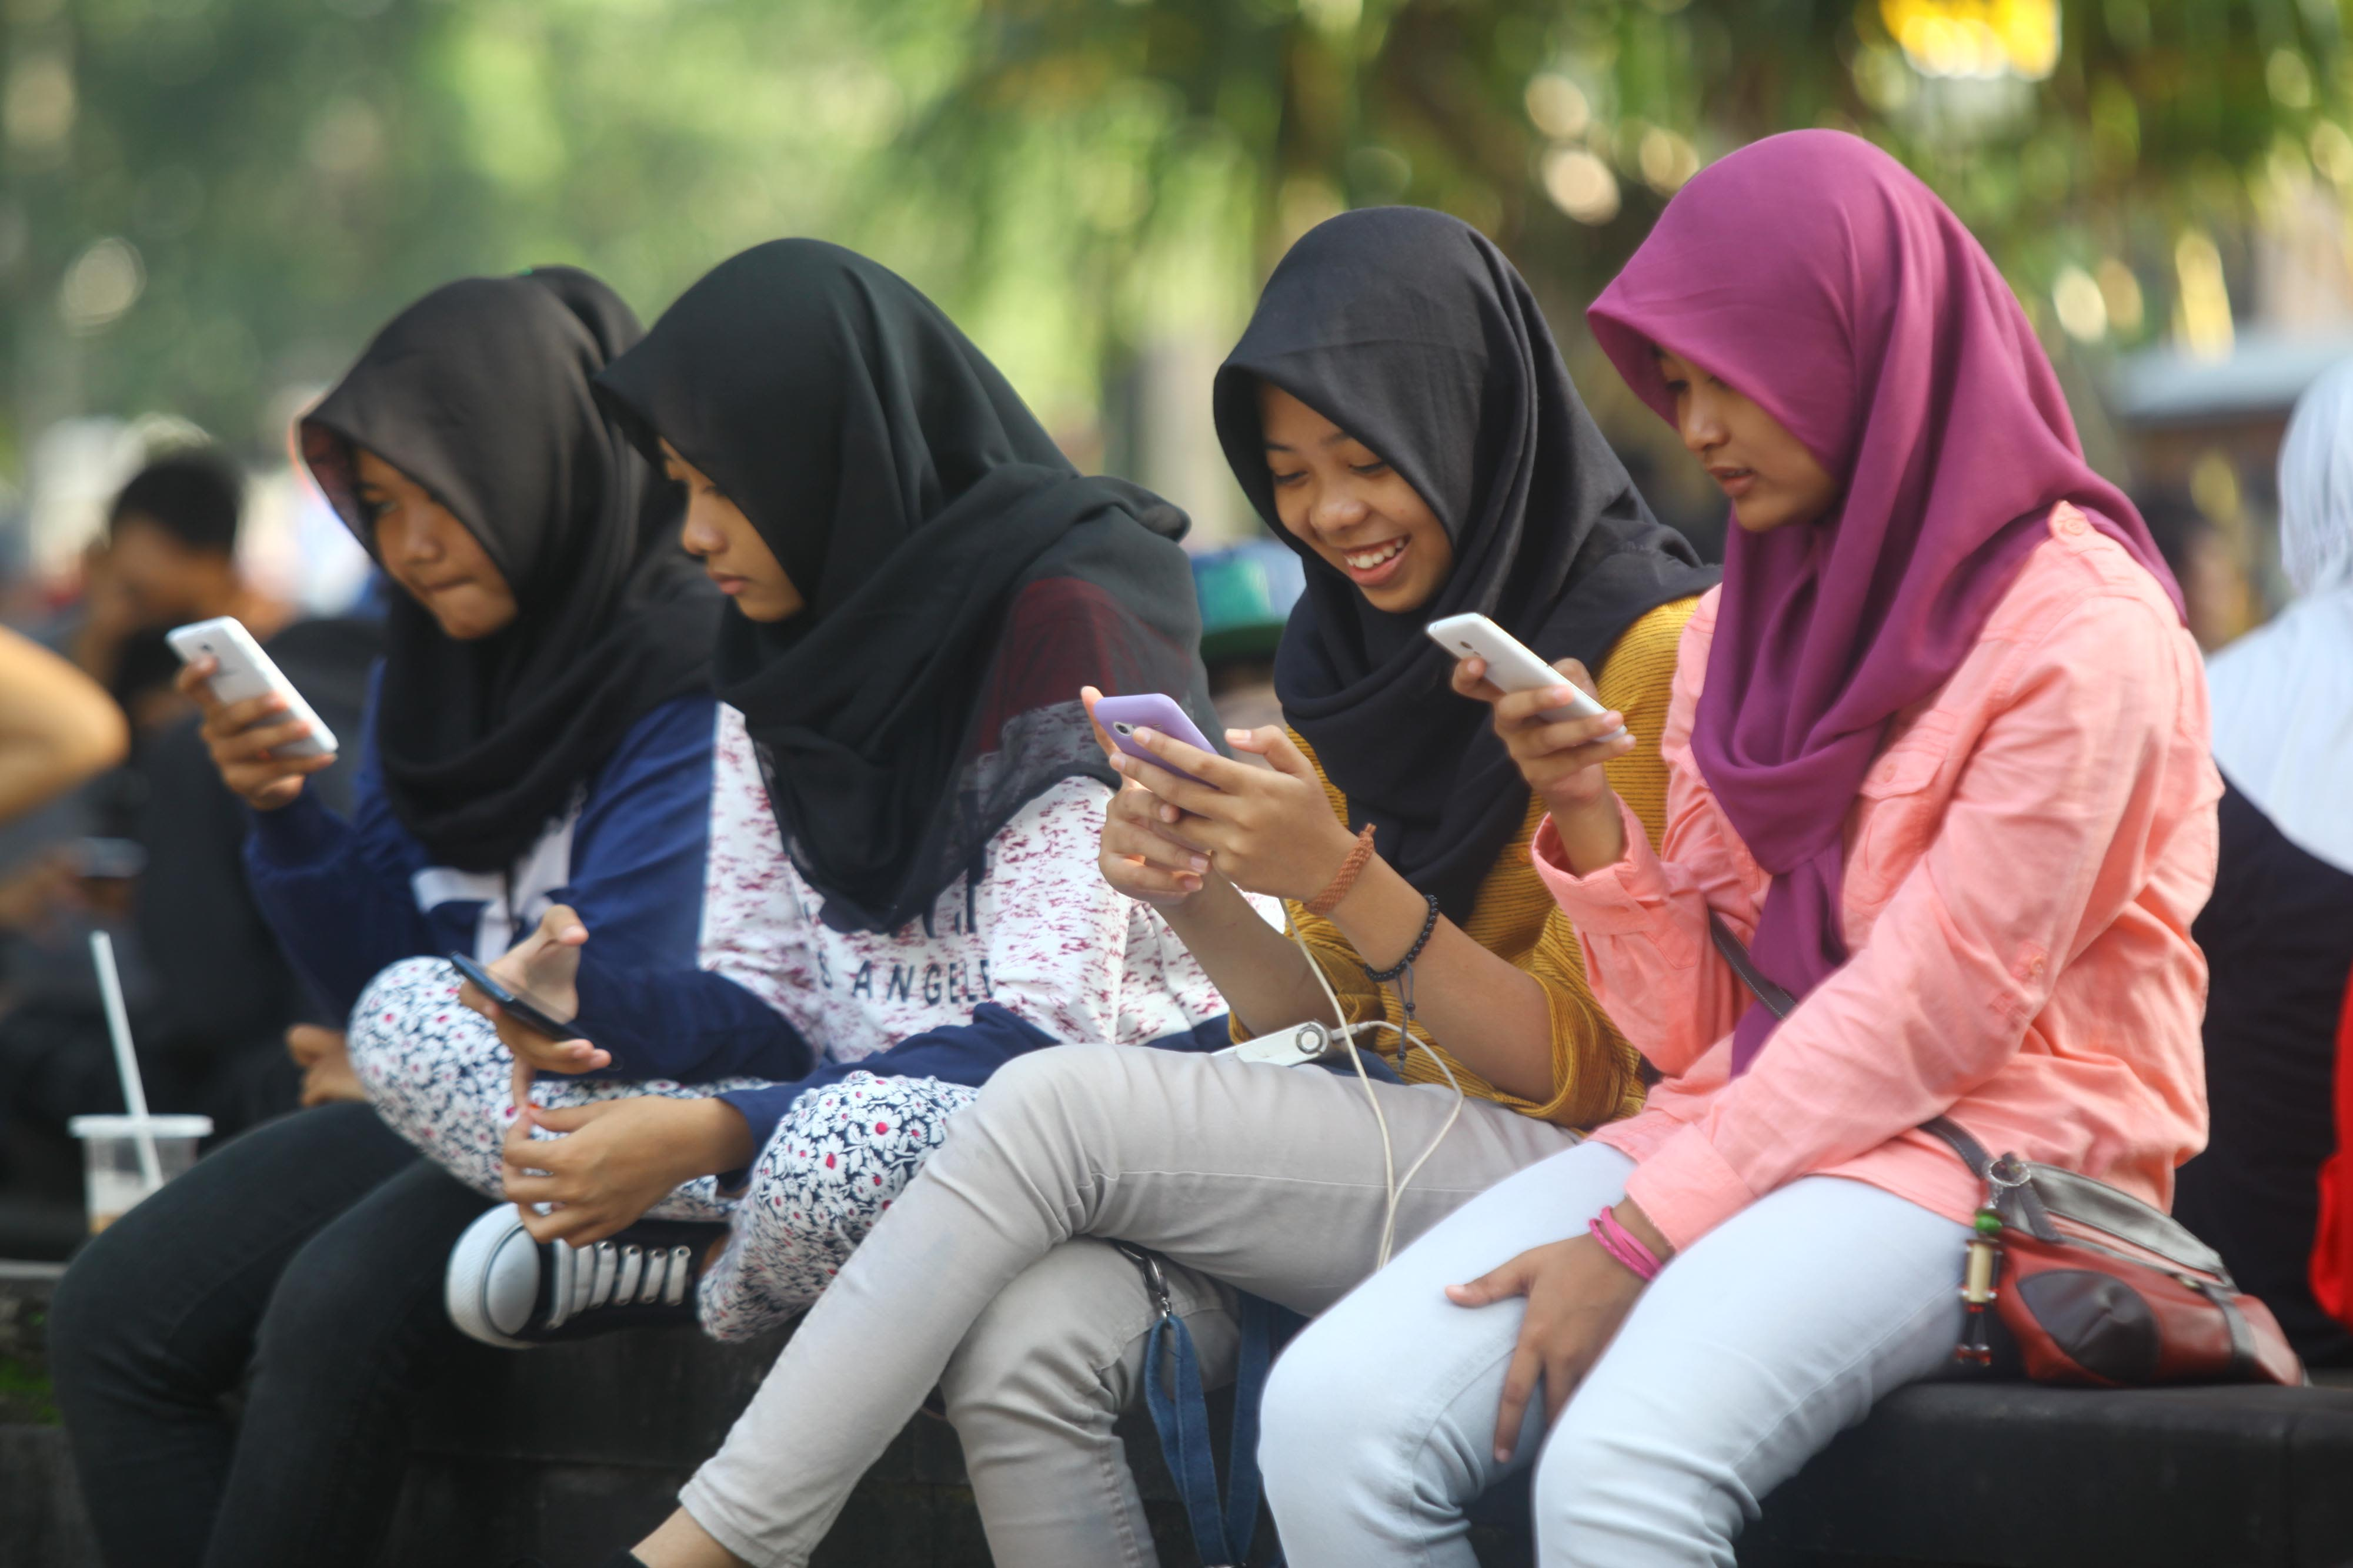 Indonesia's Bukalapak on possible expansion into fintech, Middle East